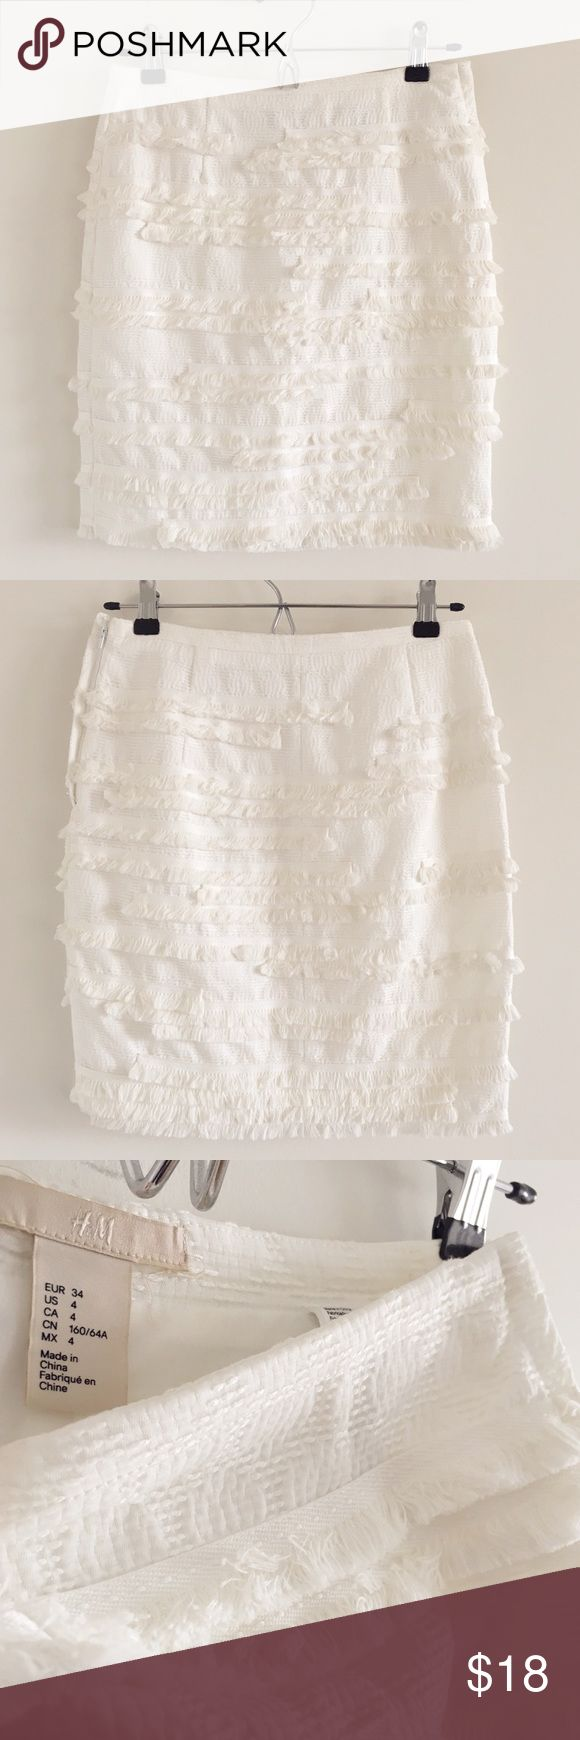 🆕 H&M White Fringe Short Pencil Skirt Size 4 A super cute lined side-zip skirt that would be perfect dressed up or dressed down.  Perfect for warm weather and tropical getaways!  Stats (laying flat): Length: approx. 18"